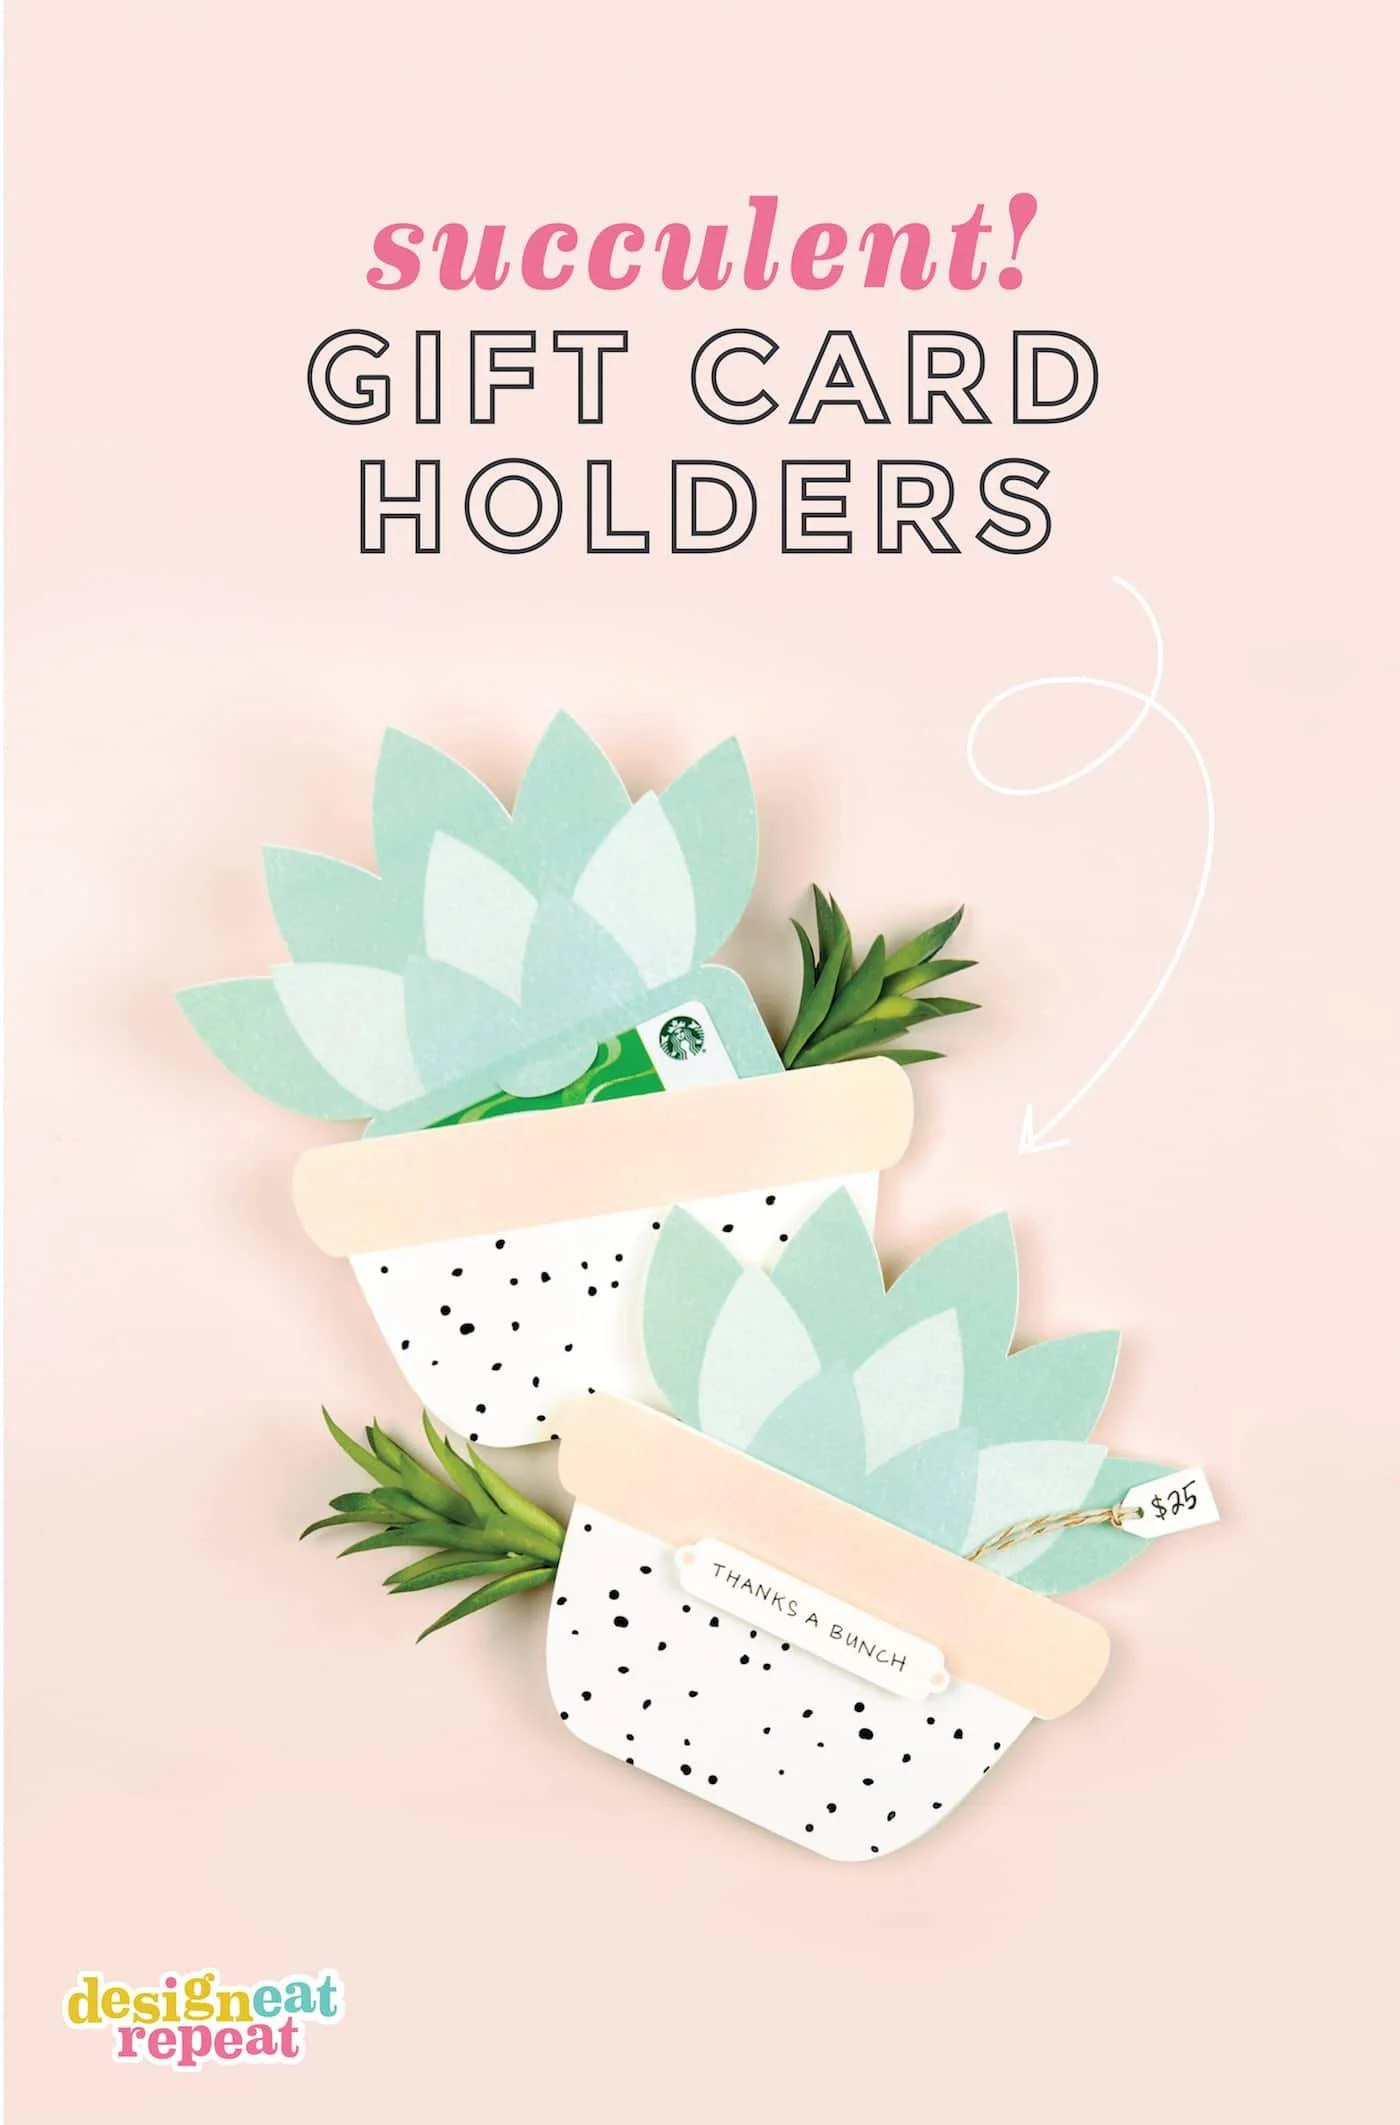 Cutest gift card holders ever! Use this freetemplate to make your own SUCCULENT printablegift card holders! Perfect for teacher gifts, bridal showers, and birthdays! #printable | #giftcard | www.DesignEatRepeat.com